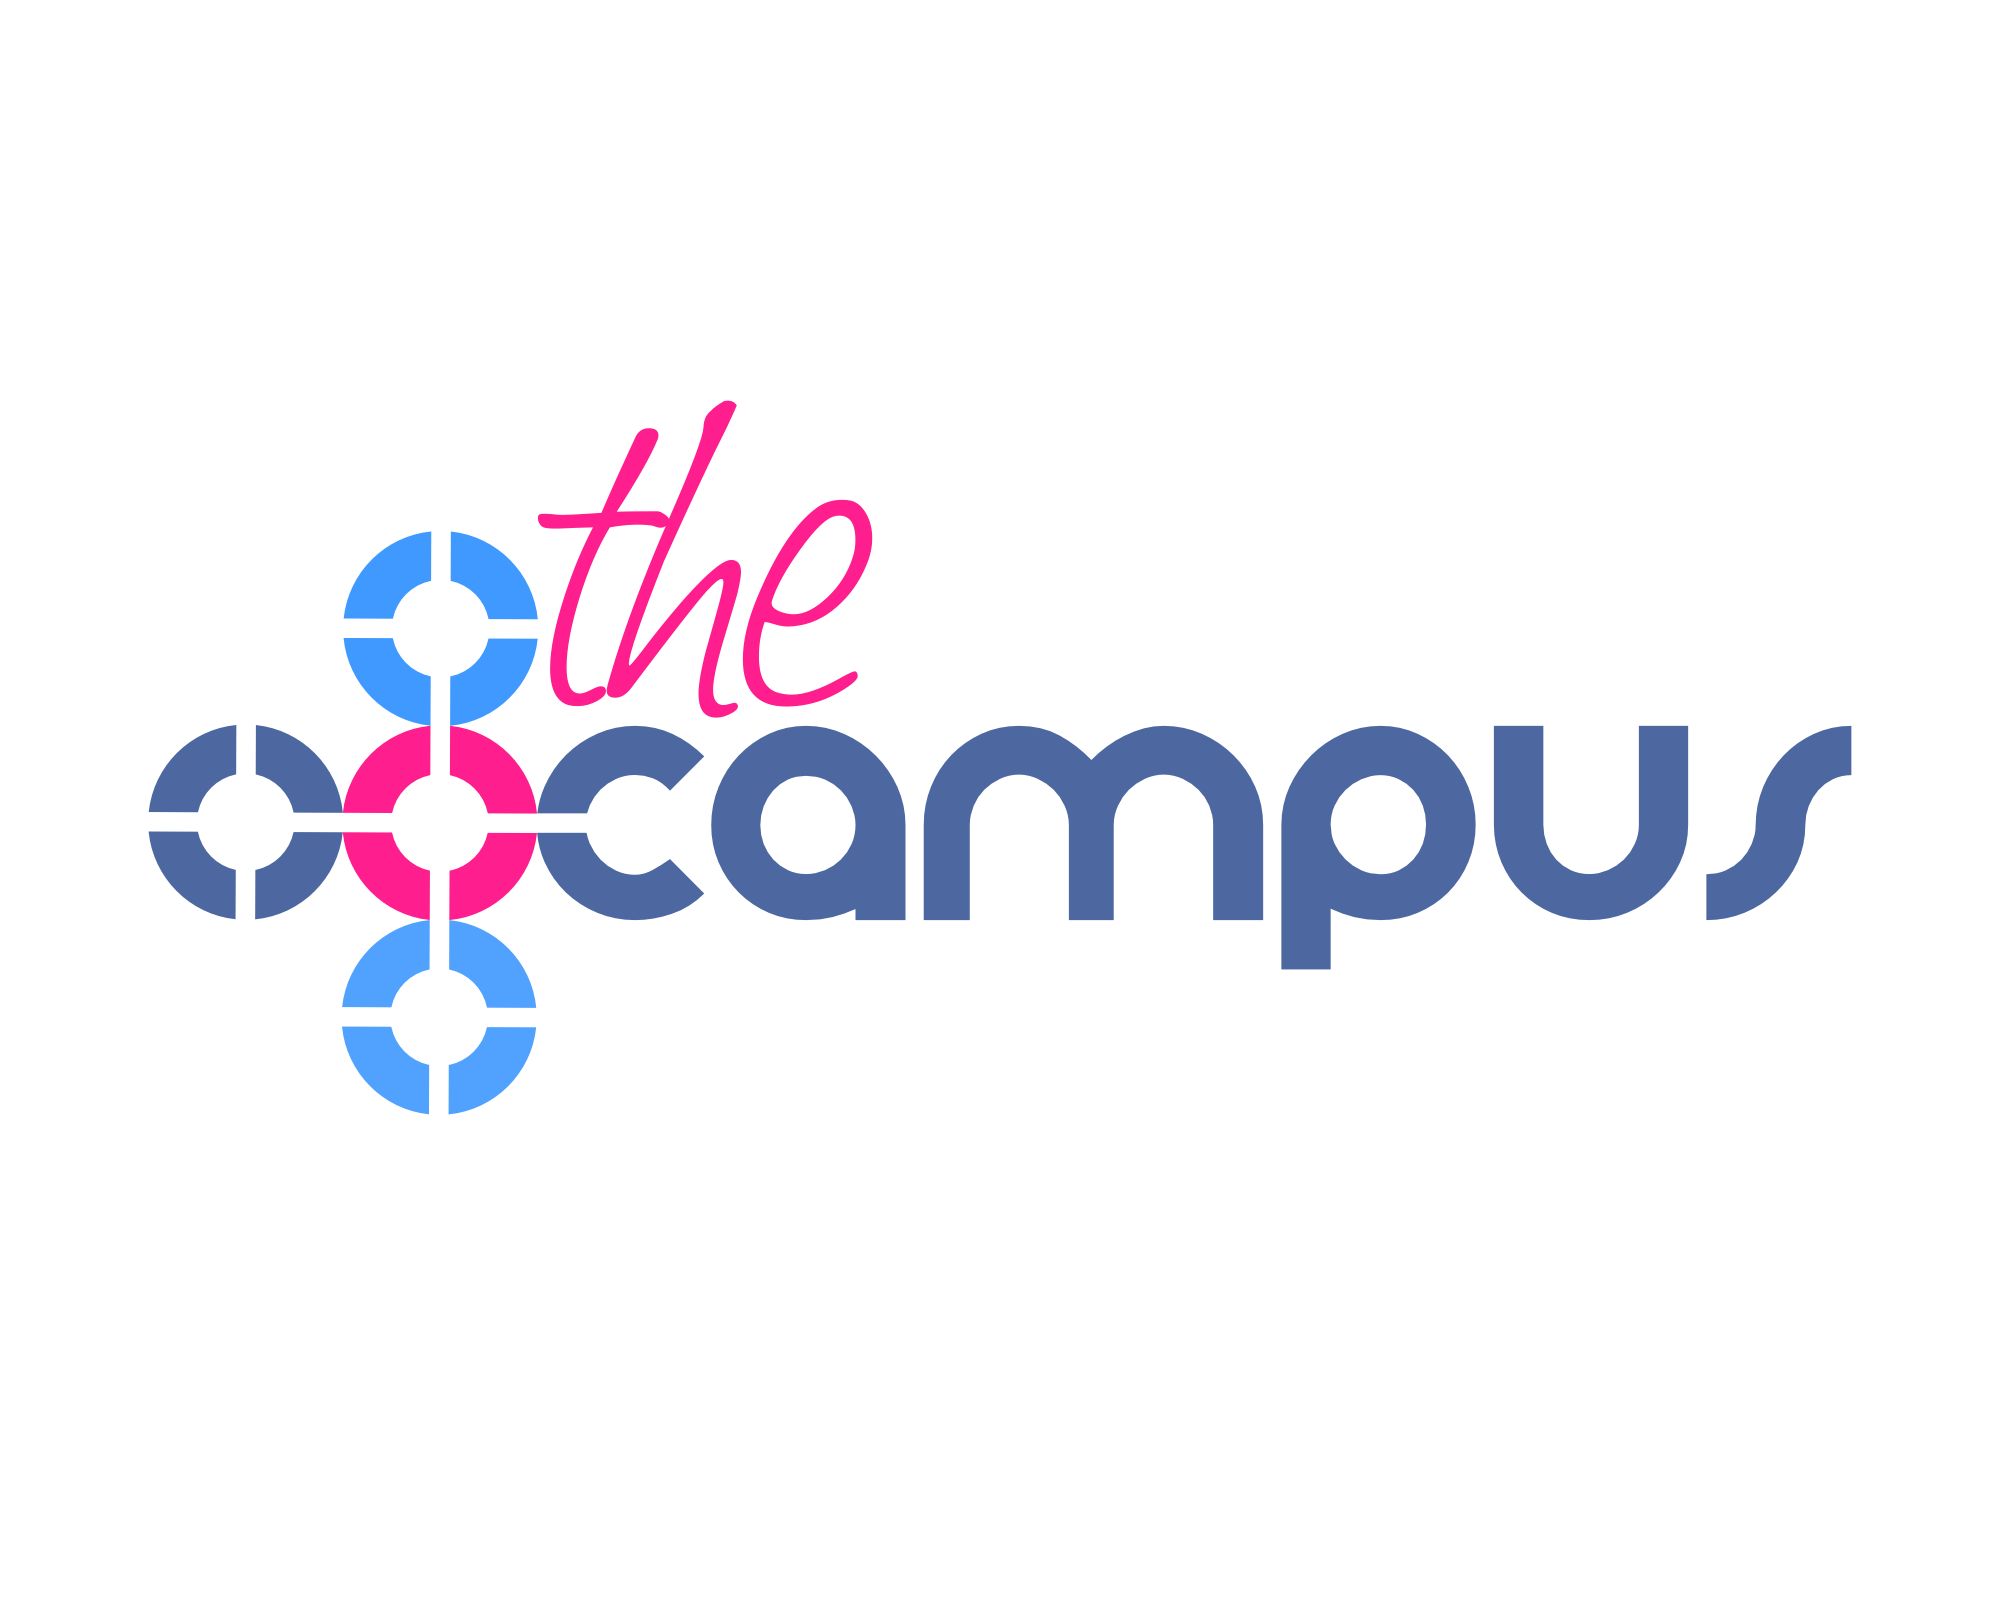 Logo Design by explogos - Entry No. 4 in the Logo Design Contest theCampus Logo Design.